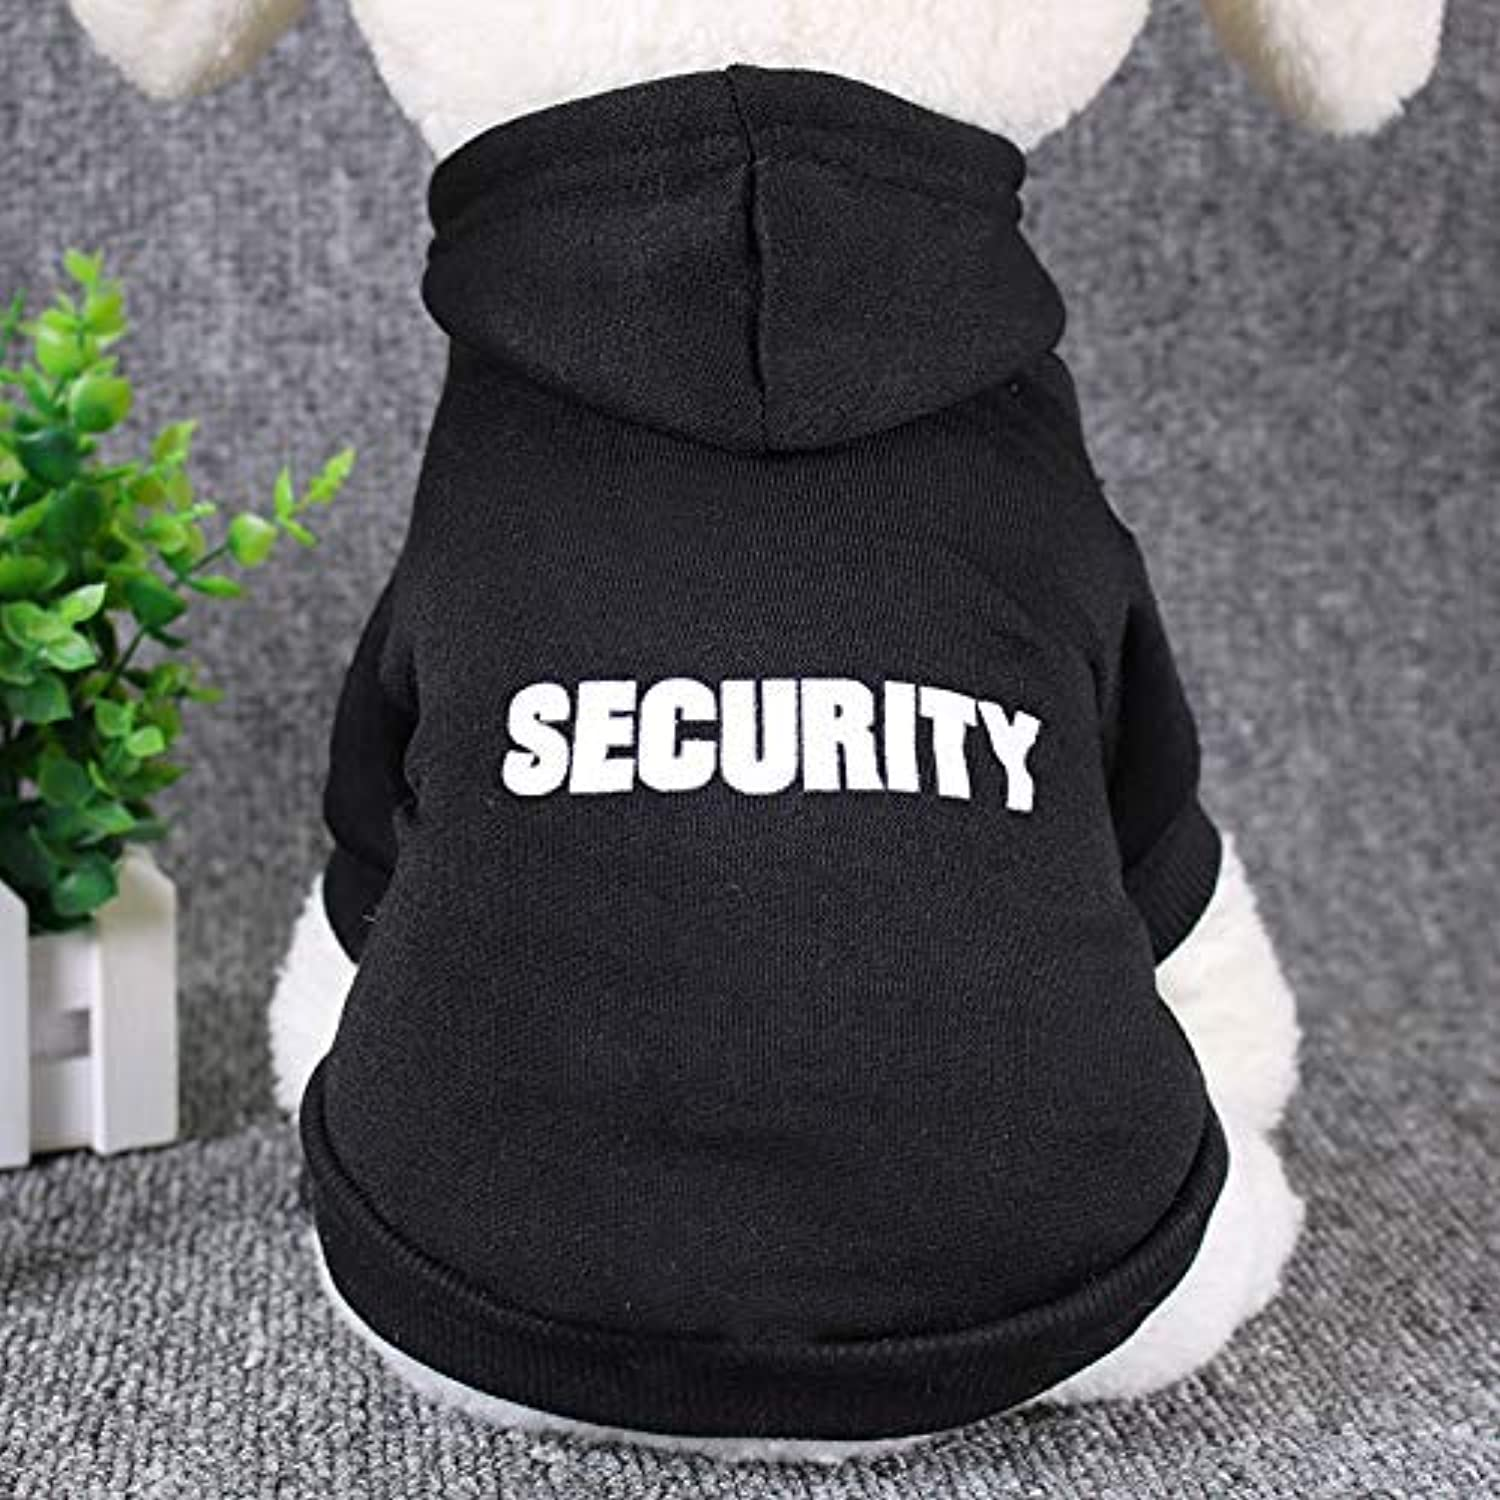 HSDDA Party Pet Costume Pet sweater autumn and winter pet clothes jacket hooded dog clothes (color   Black, Size   M) Pet Uniform (color   Black, Size   M)